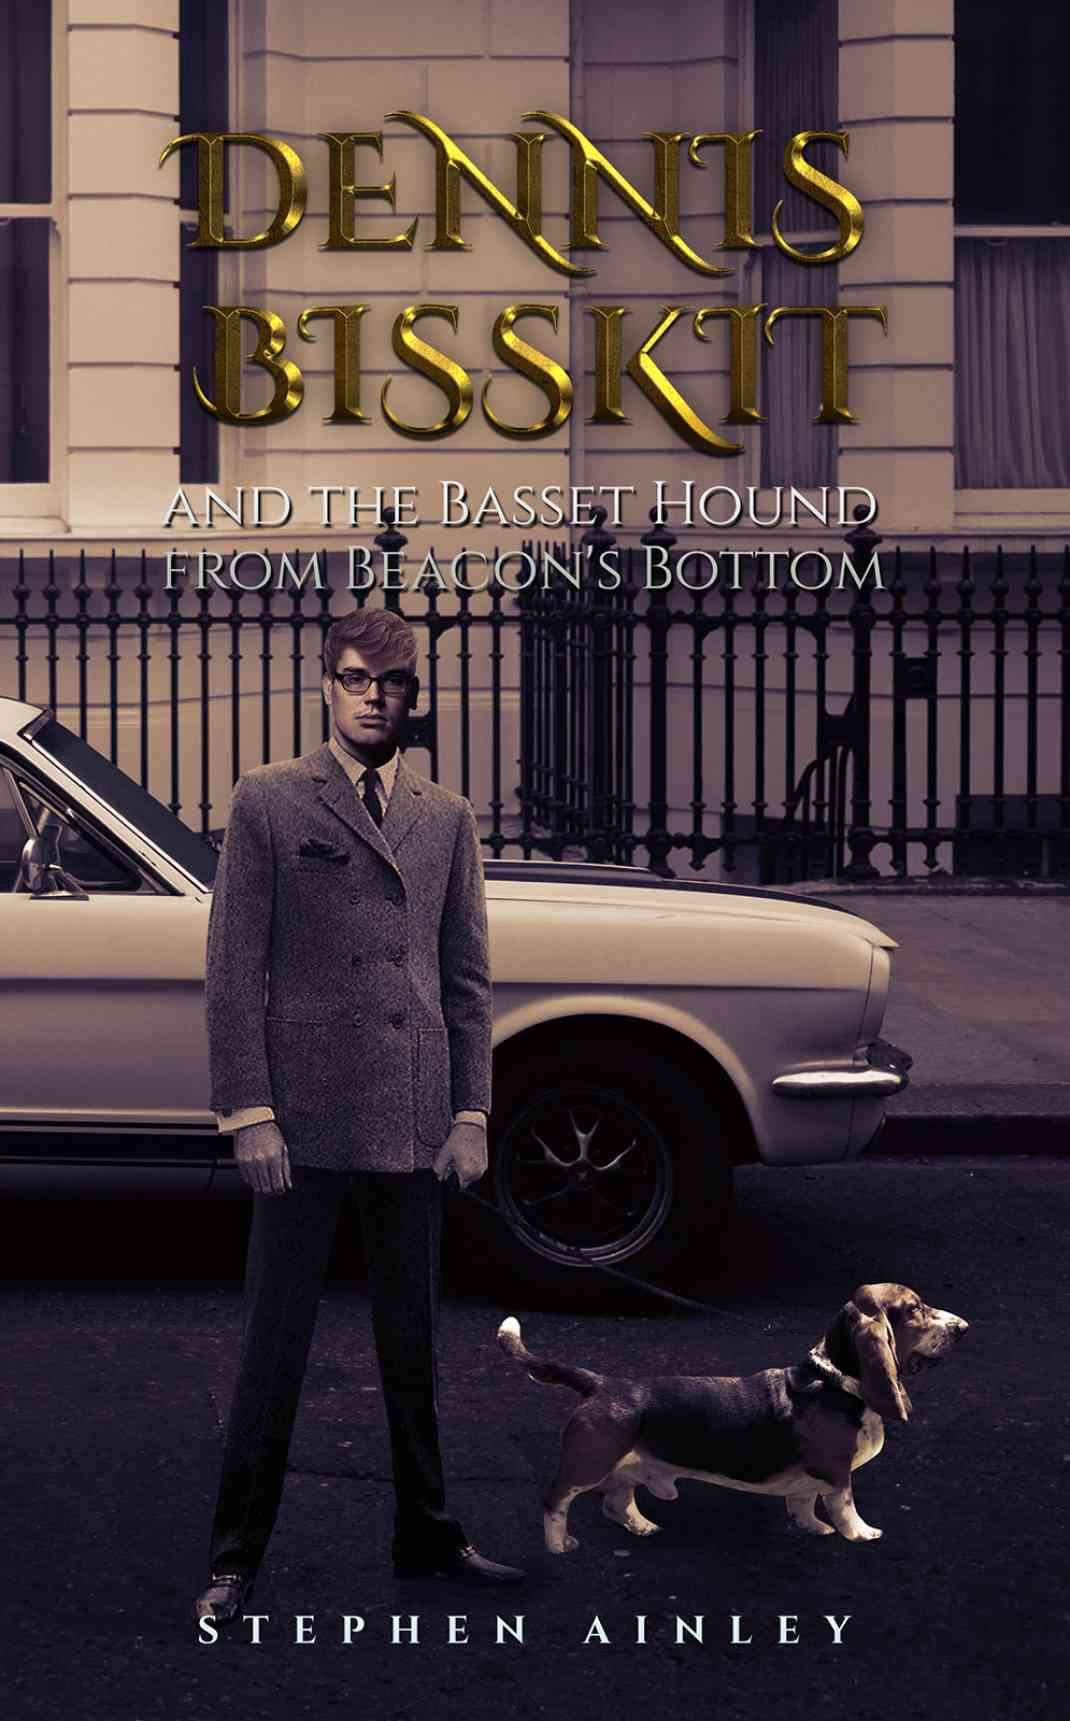 Dennis Bisskit and the Basset Hound from Beacon's Bottom